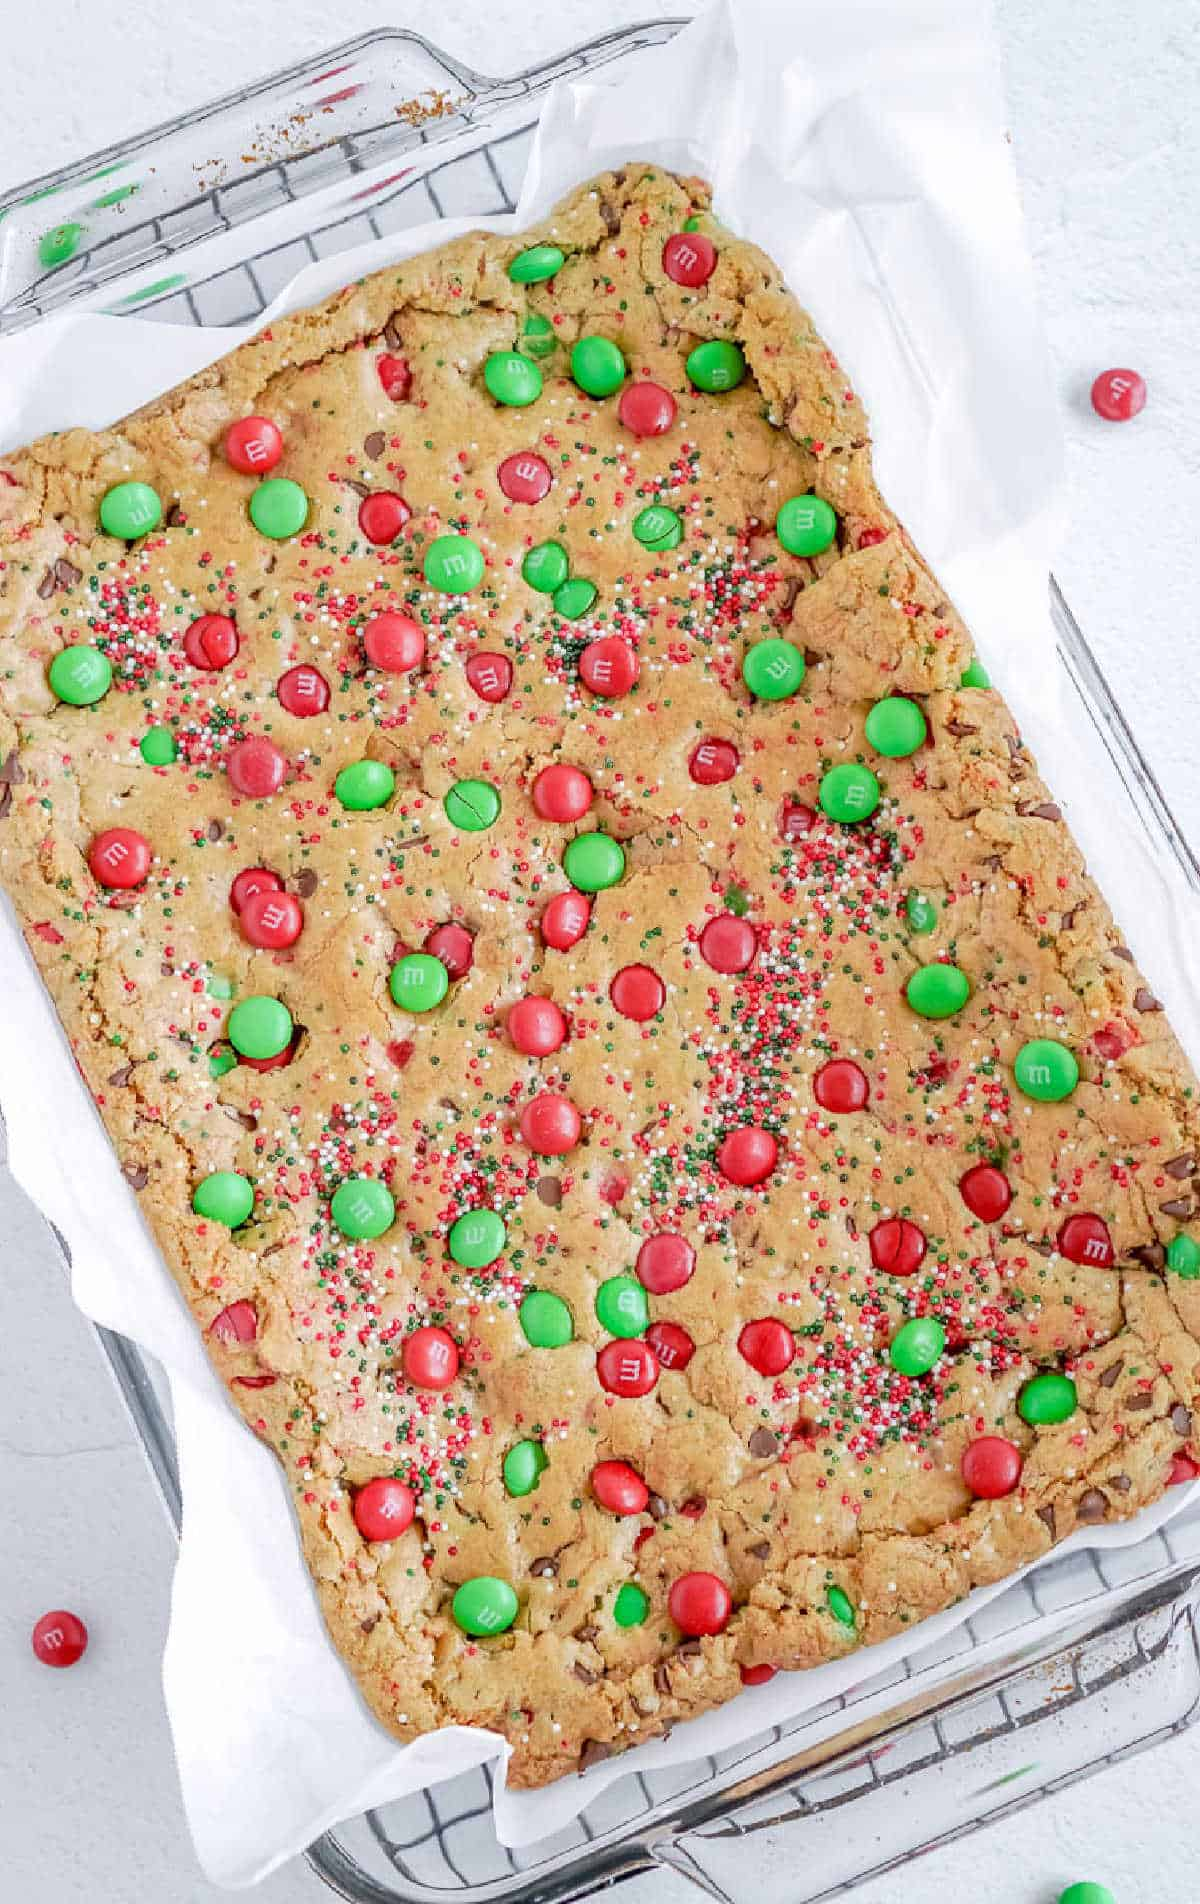 cookie bars on a baking sheet before being cut into squares.